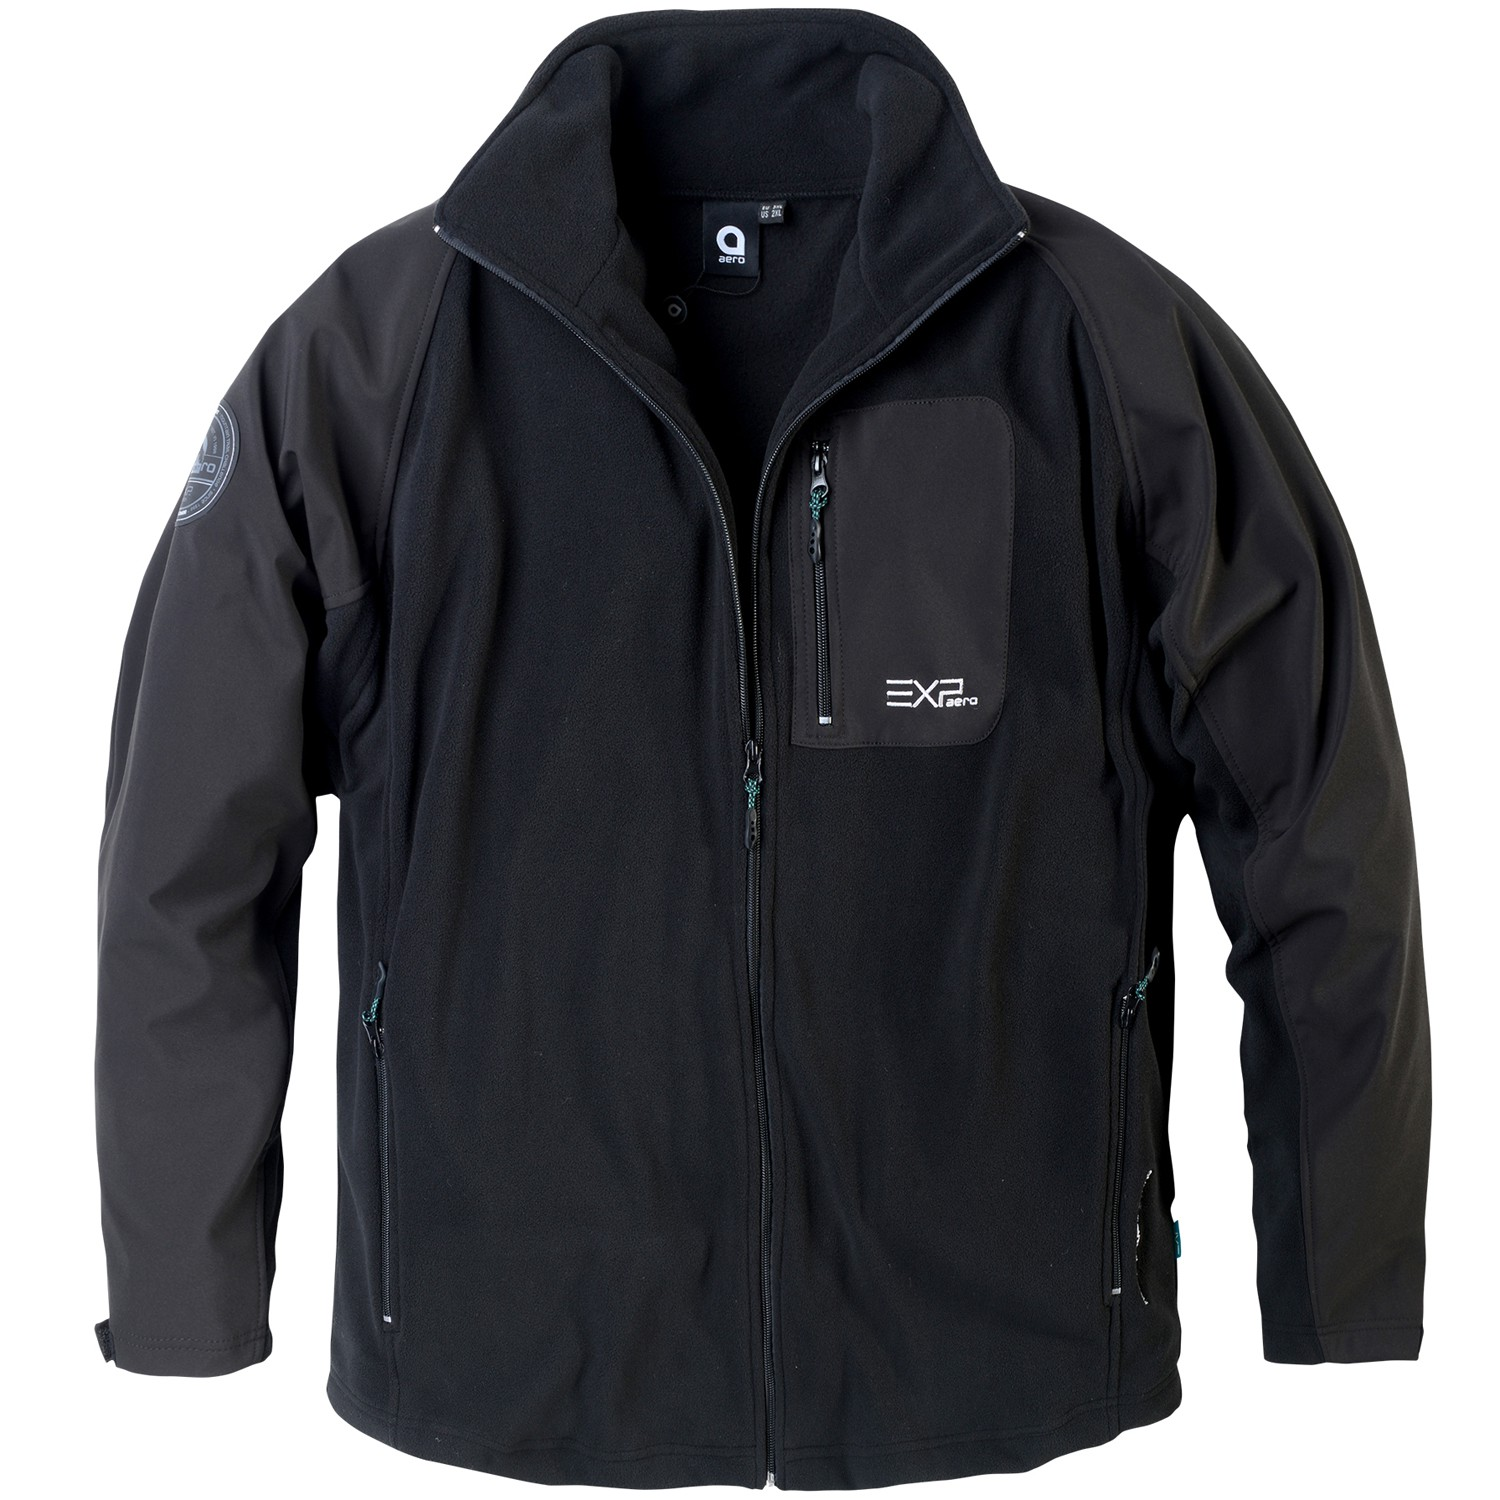 Detail Image to Sport fleece jacket in big sizes black by North 56°4 up to 8XL